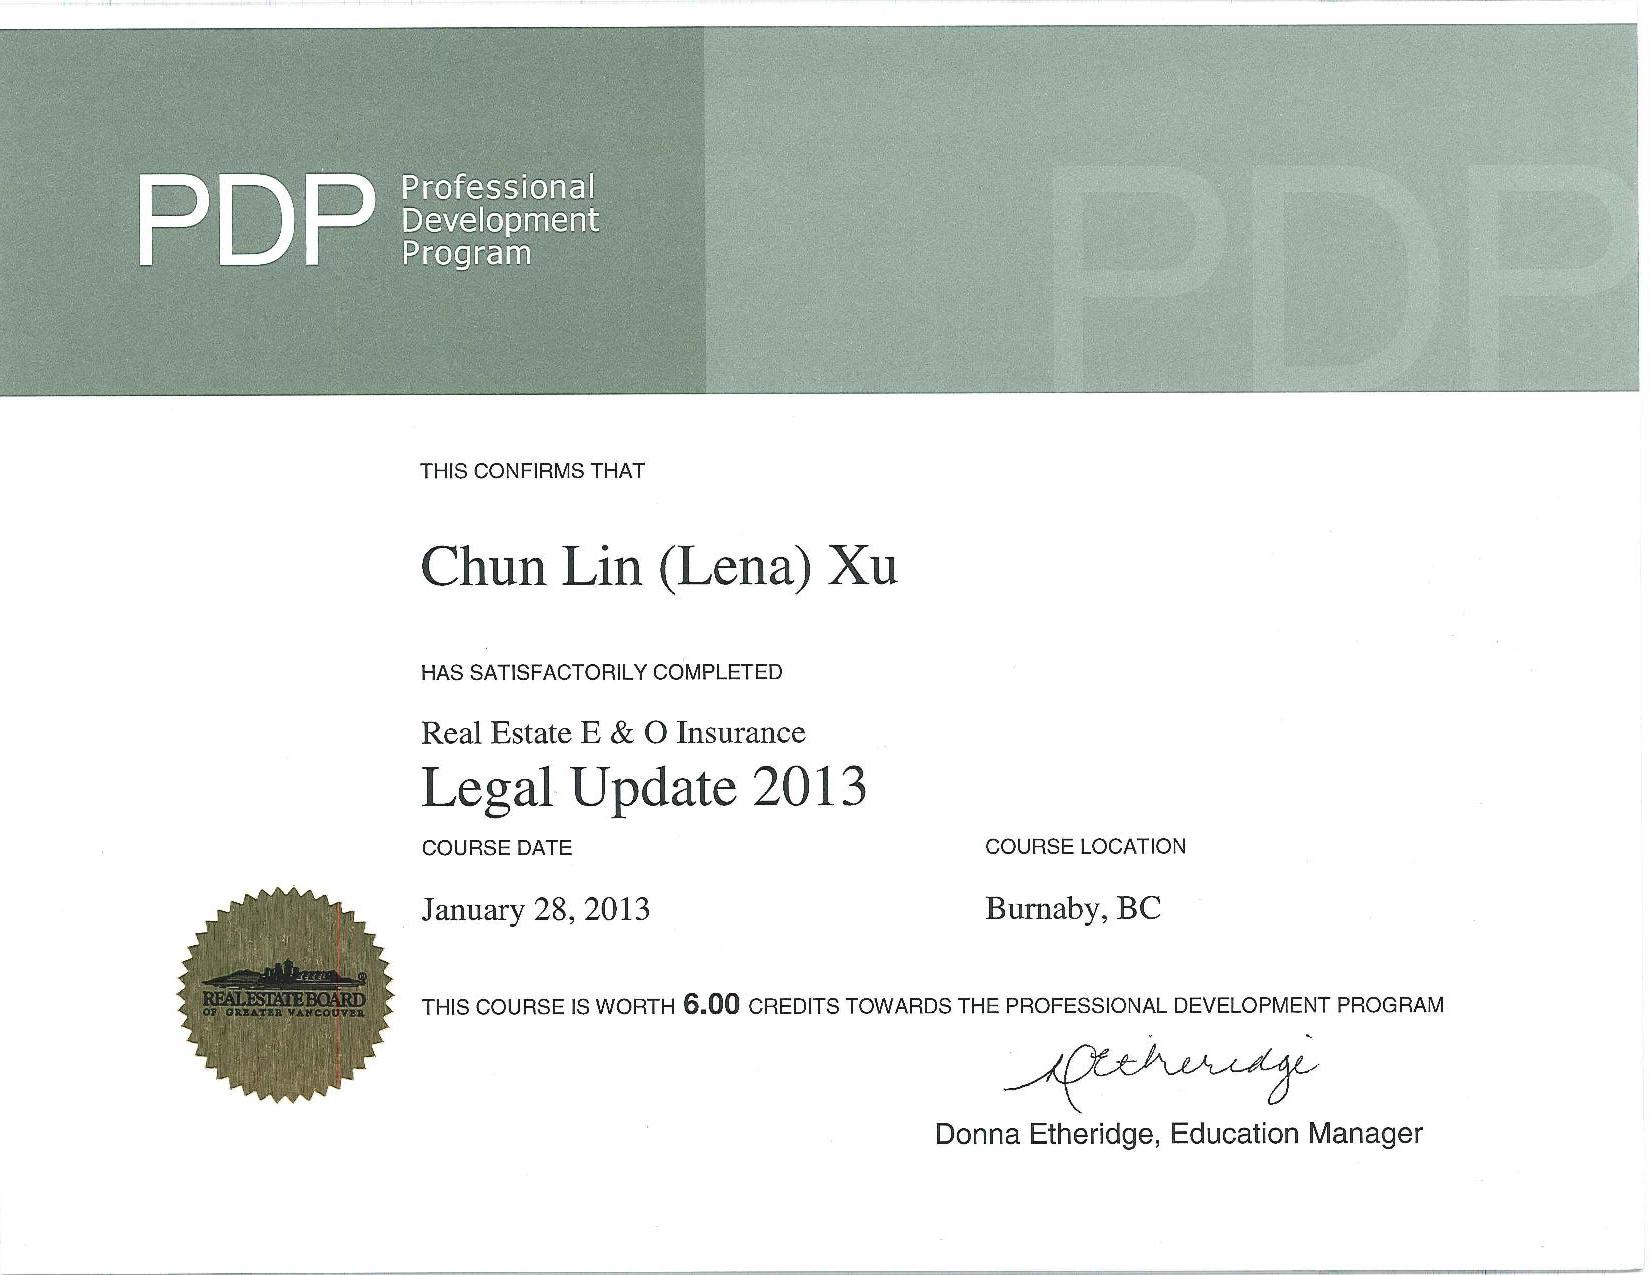 pdp legal update 2013 course